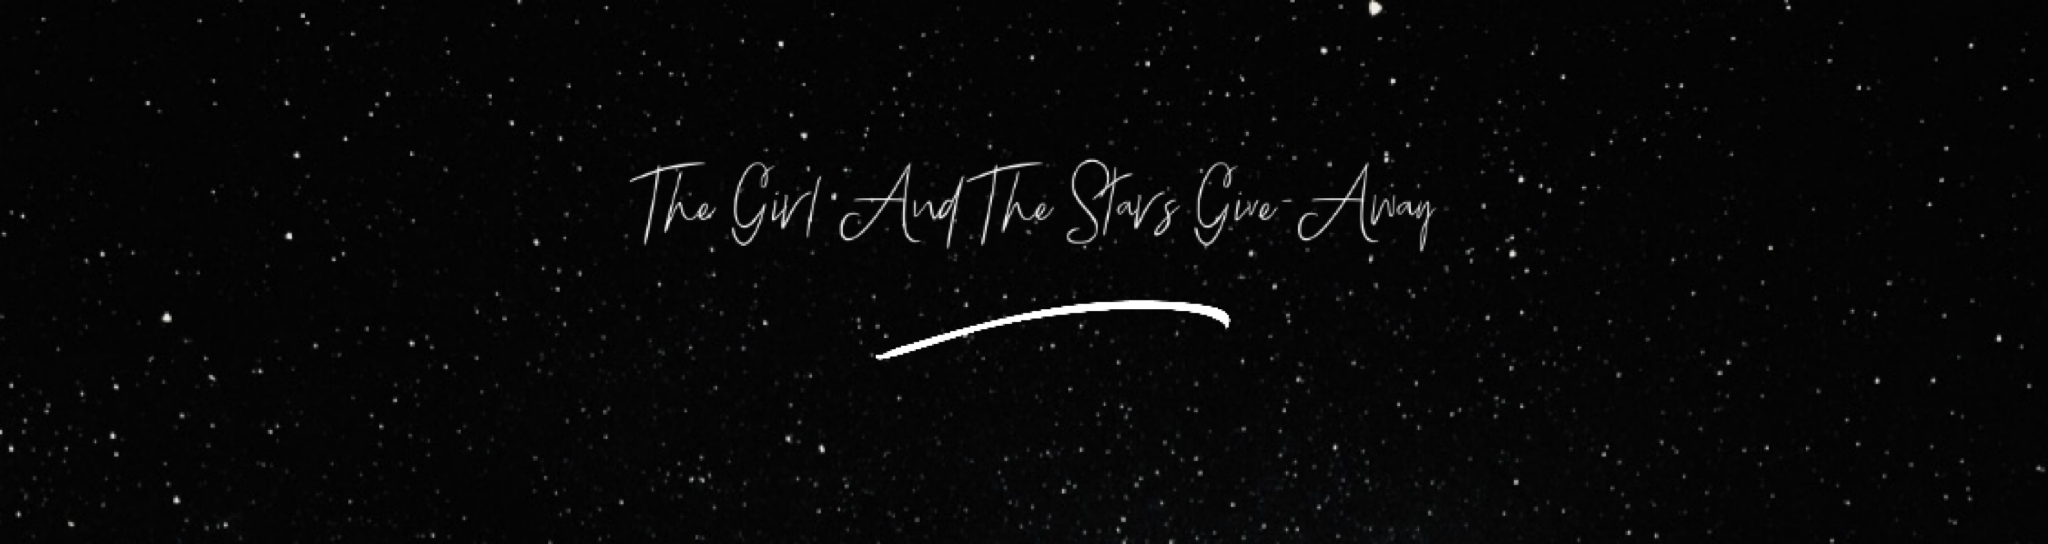 Announcing the winners of The Girl and the Starsgiveaway